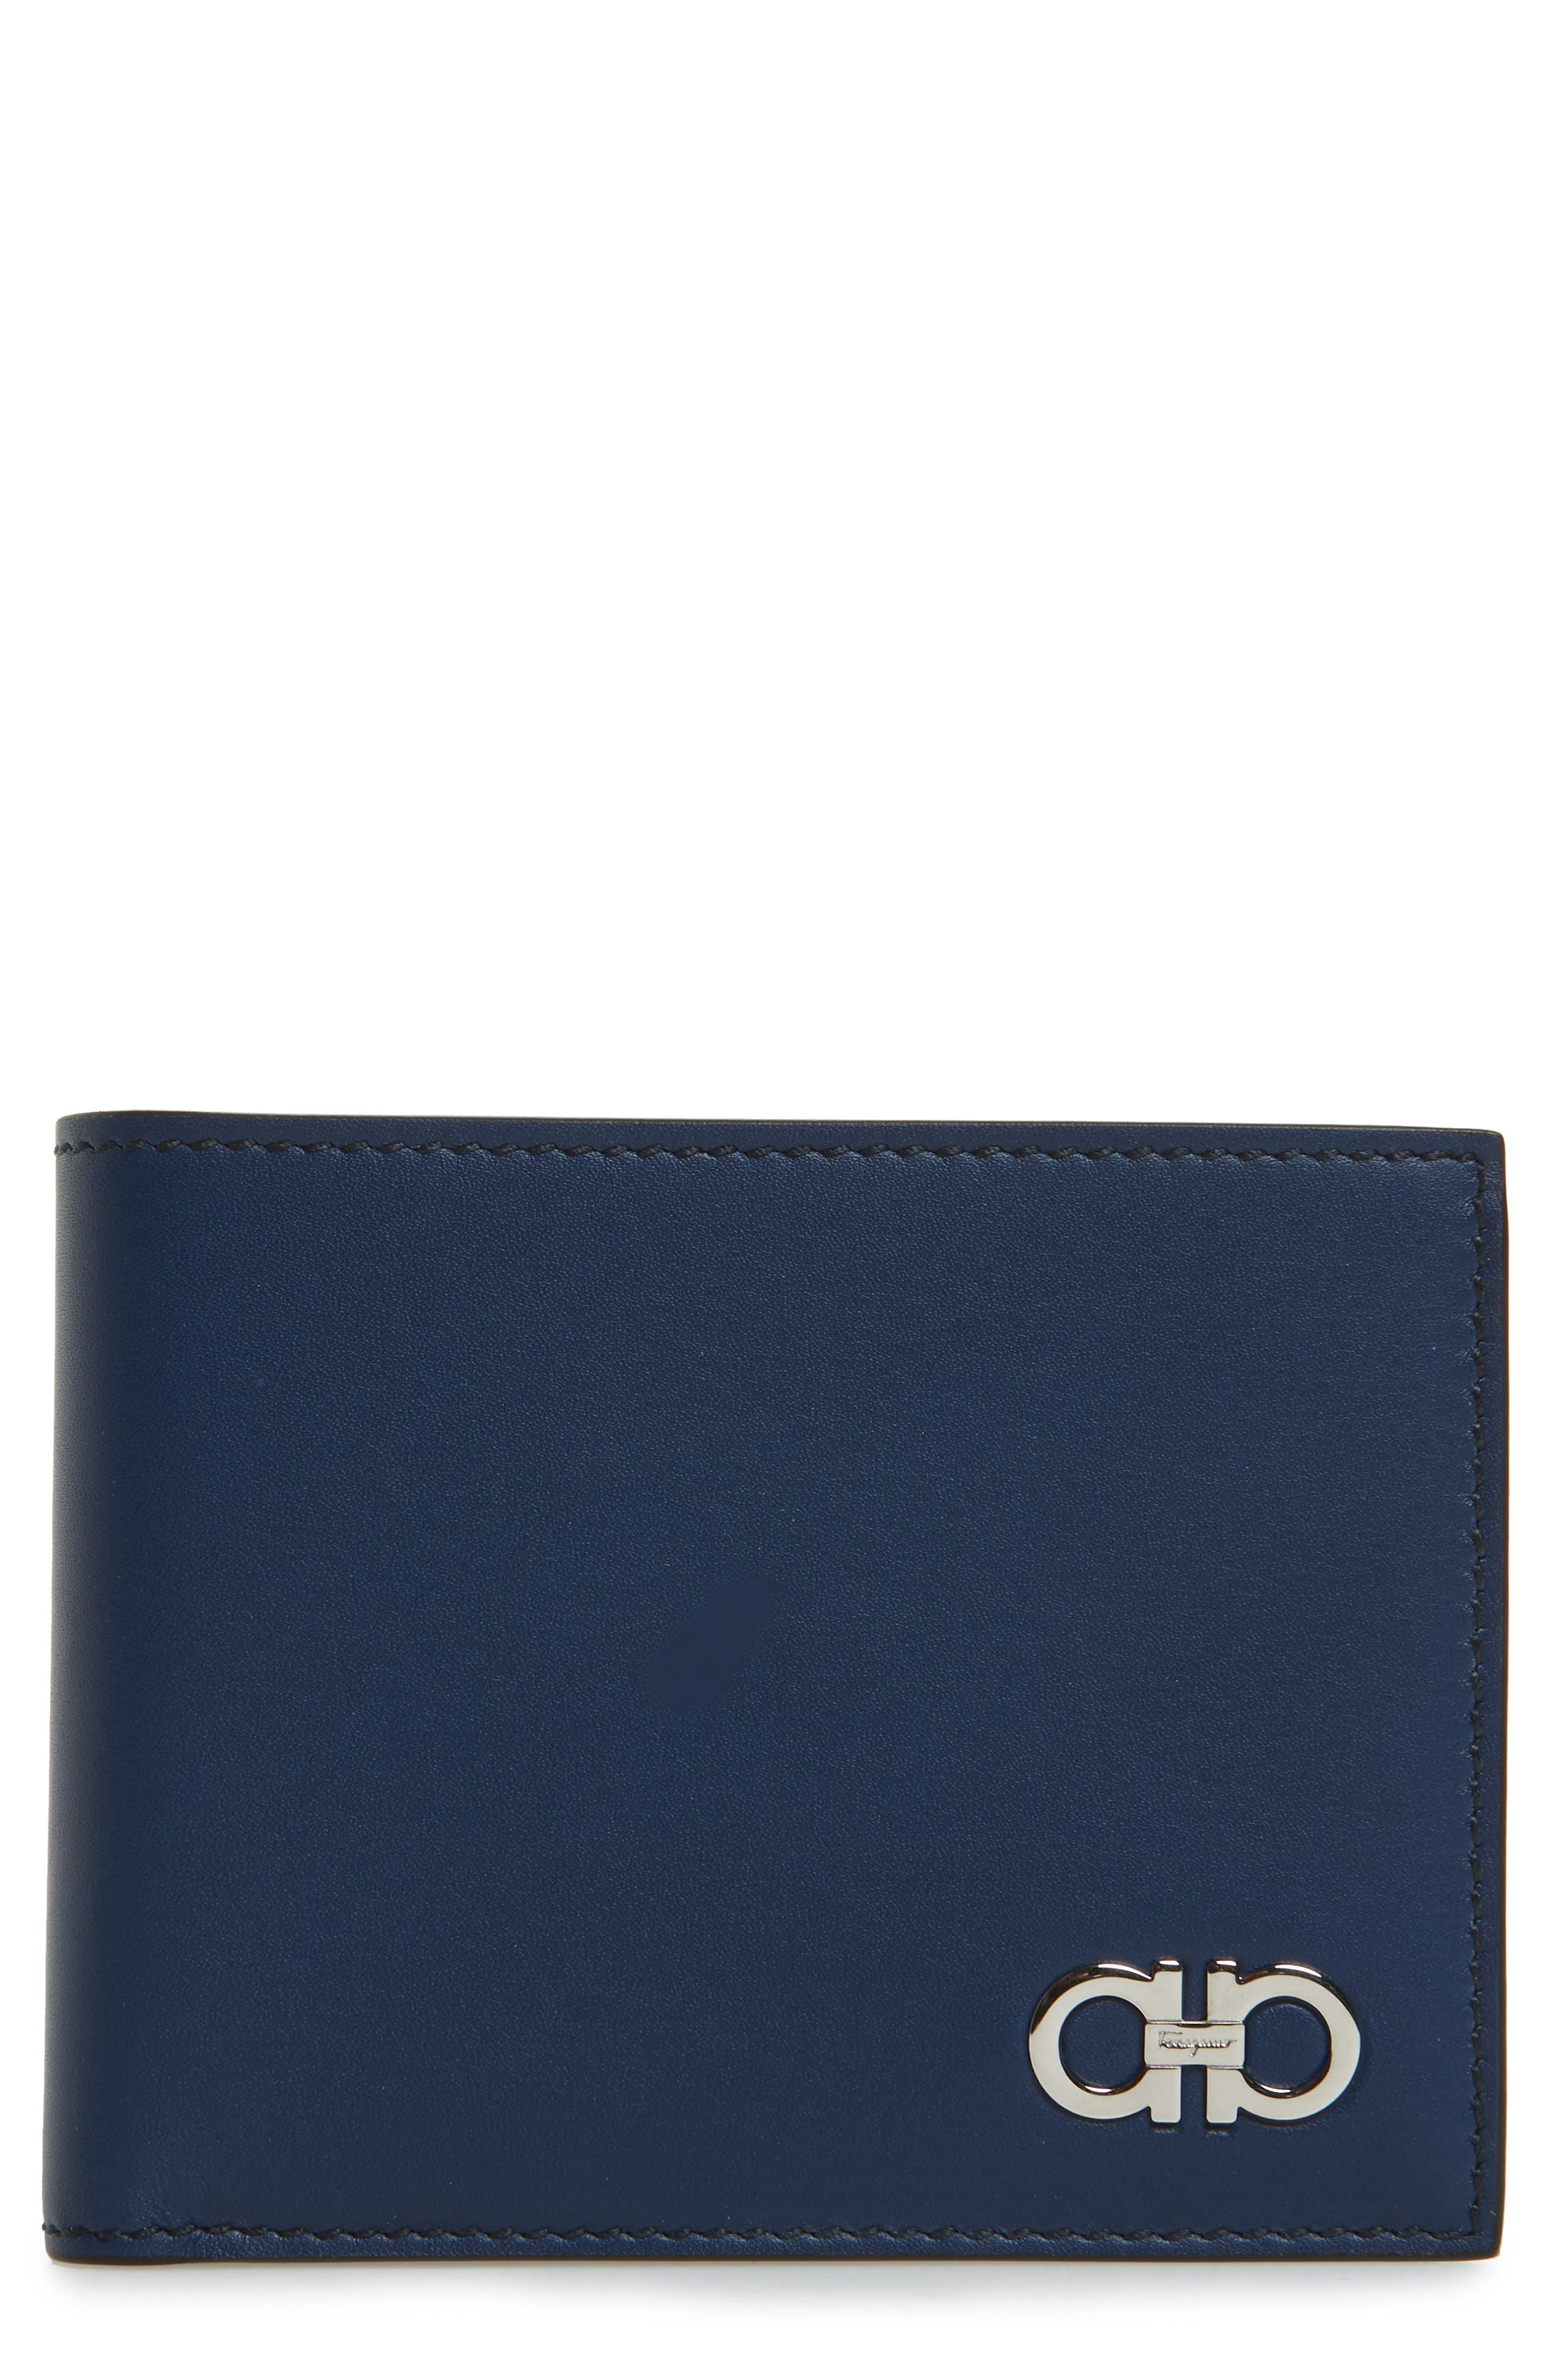 Leather Bifold Wallet,                             Main thumbnail 1, color,                             Ultramarine